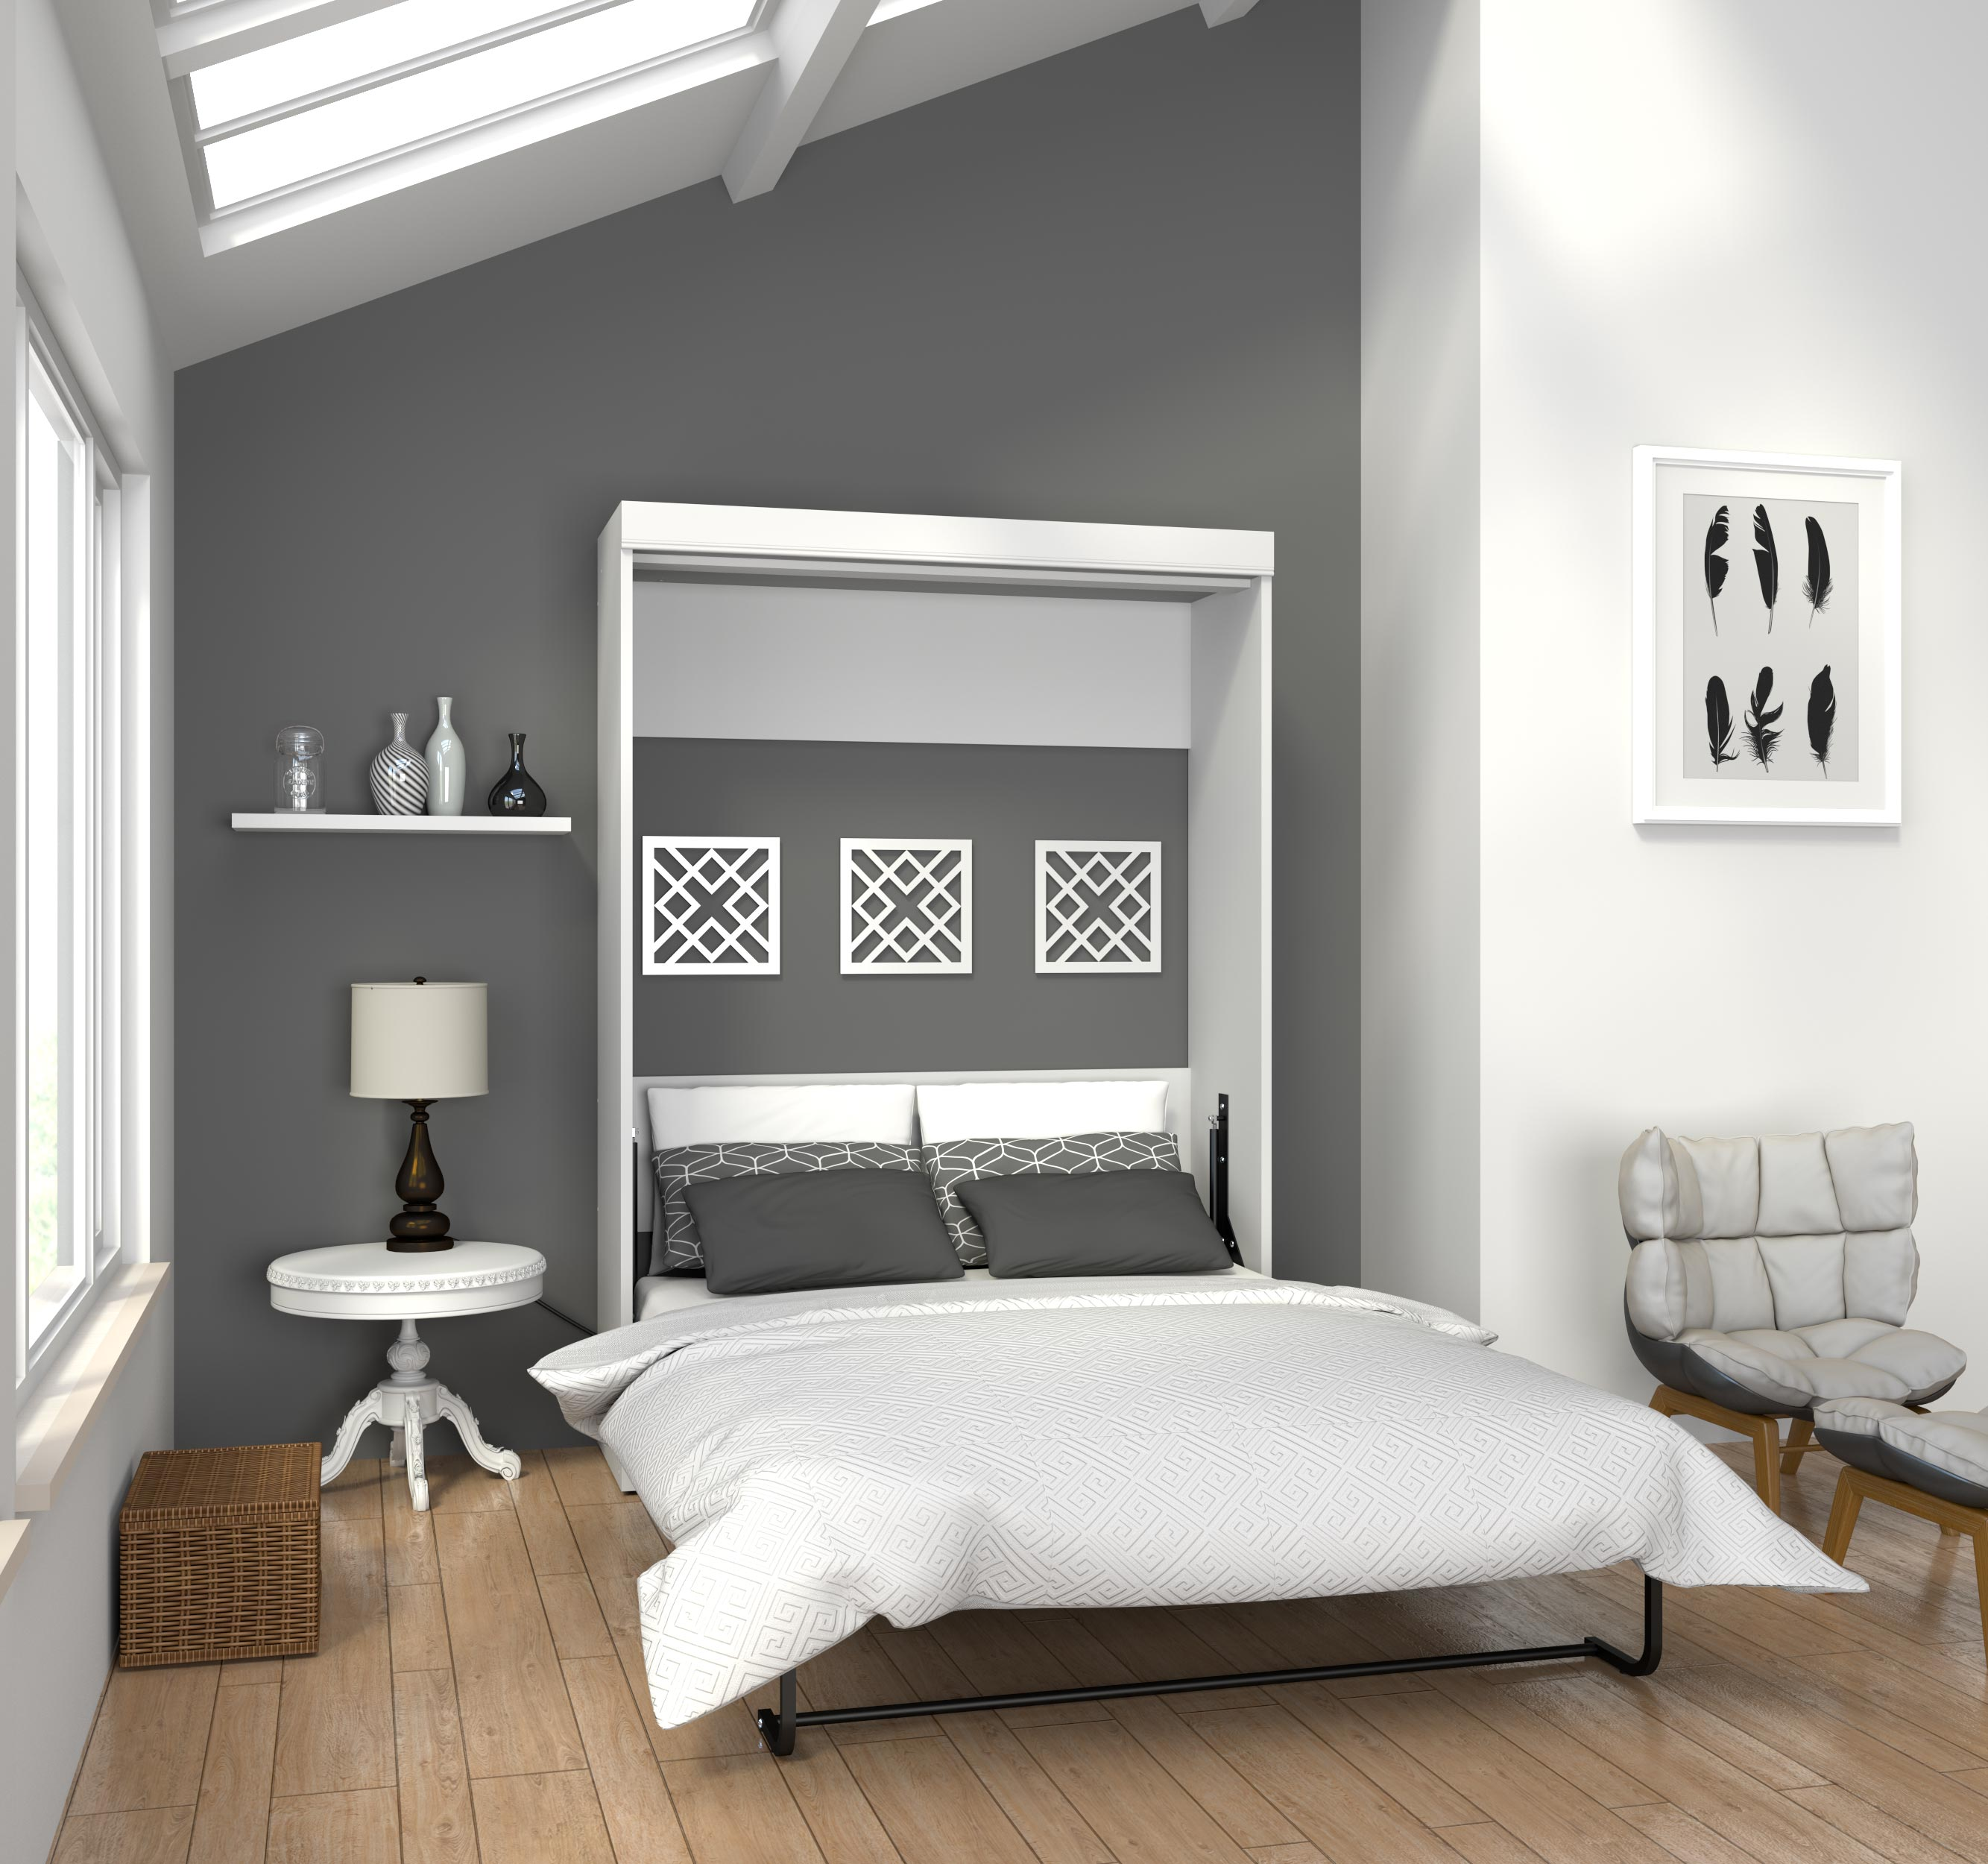 Edge by Bestar Full Wall bed in White